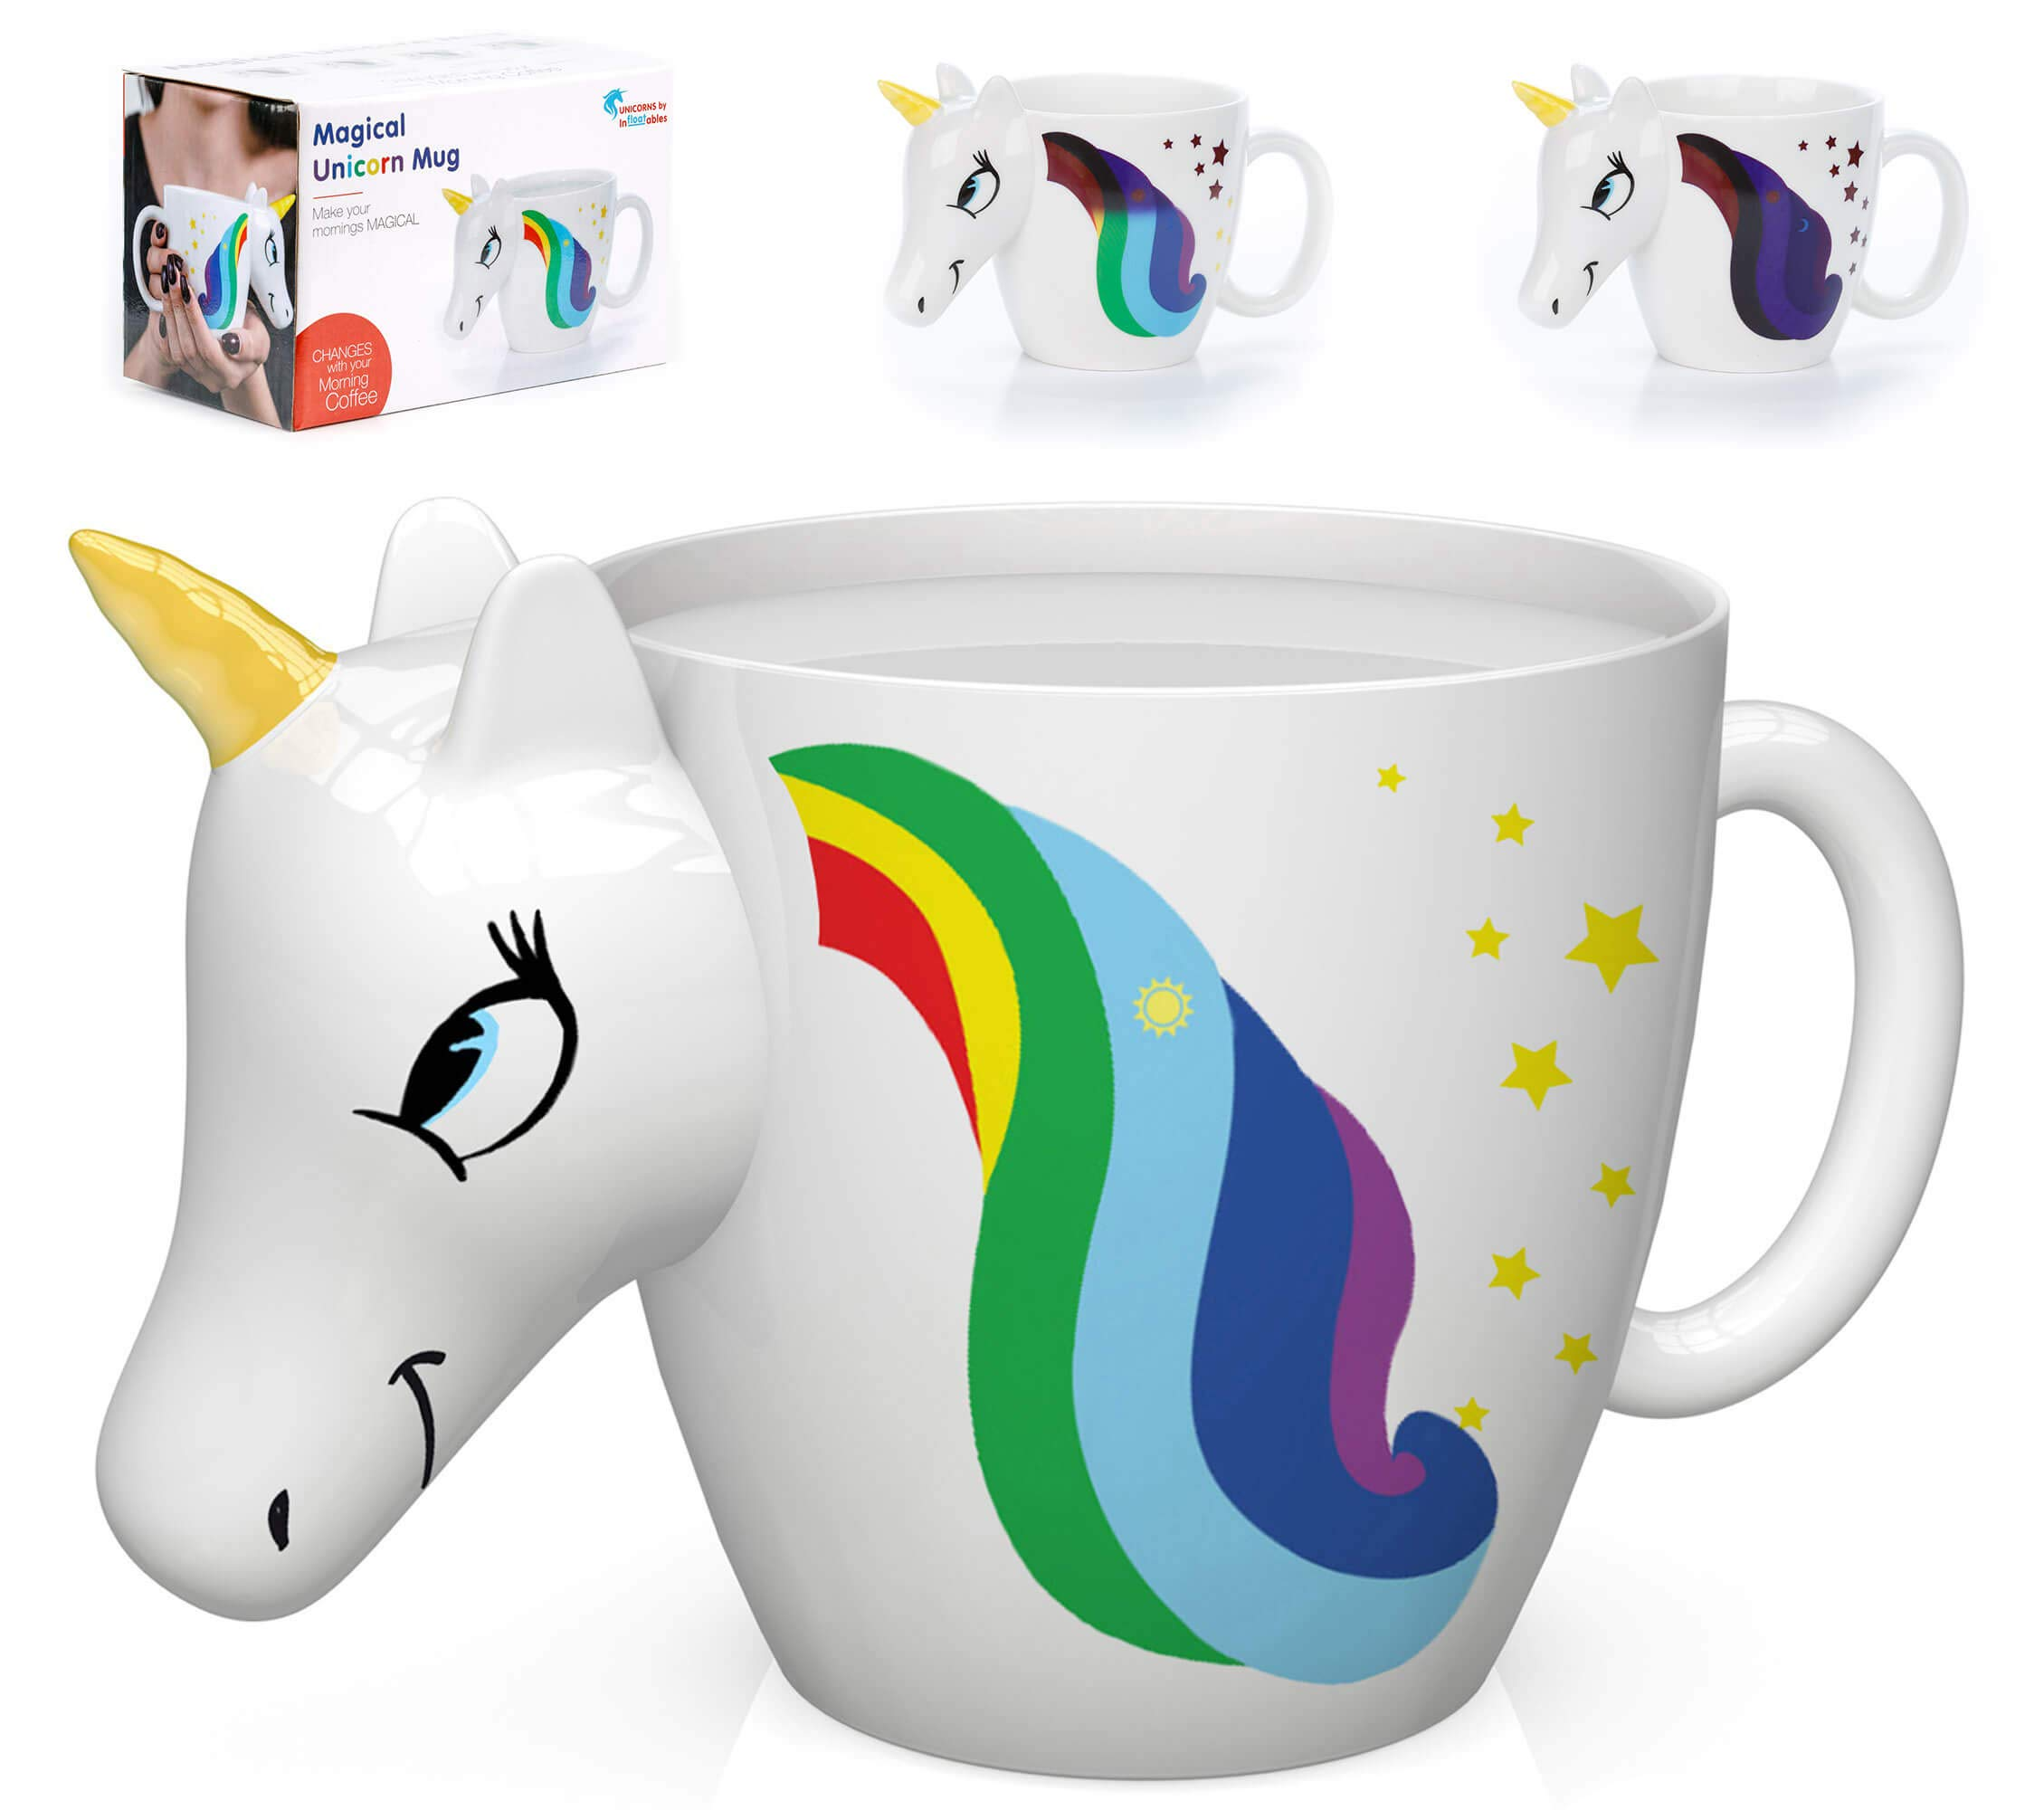 Color Changing Unicorn Mug - 3D Coffee Mugs Rainbow Design, Your morning cup of coffee or tea will never be the same… 2